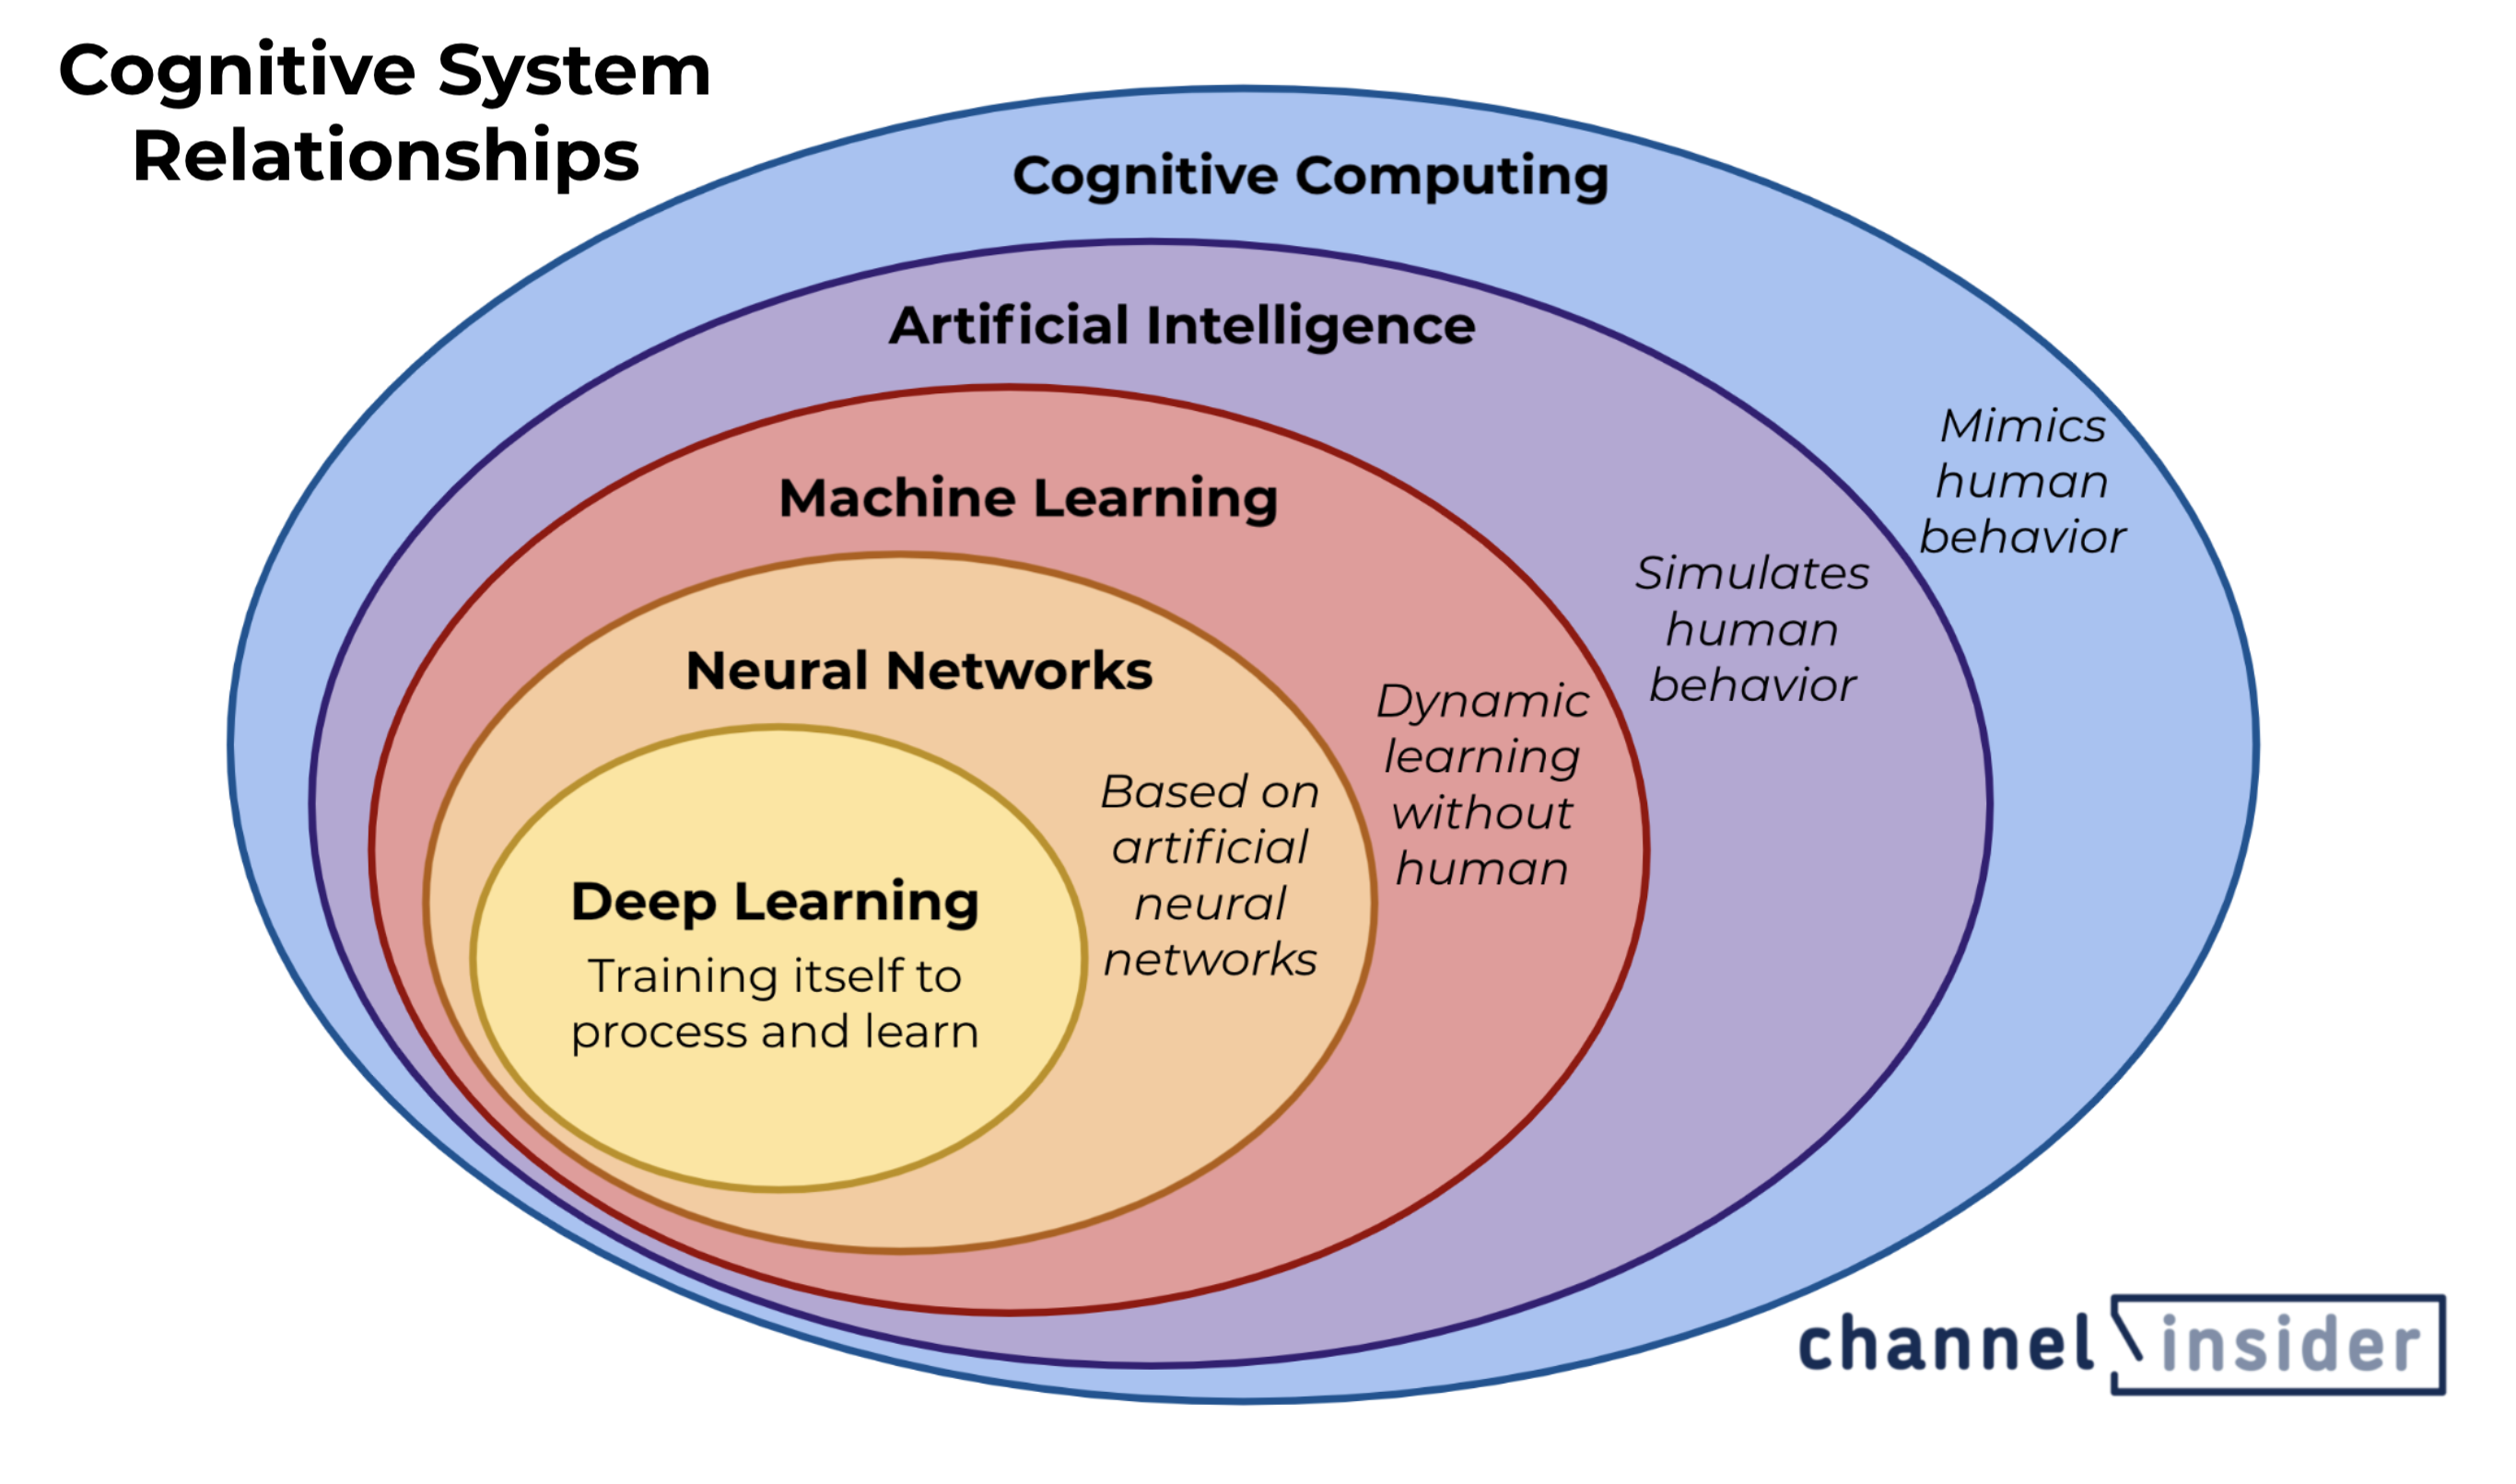 A graphic image showing how cognitive systems represent the whole set of technologies like artificial intelligence, machine learning, and deep learning.